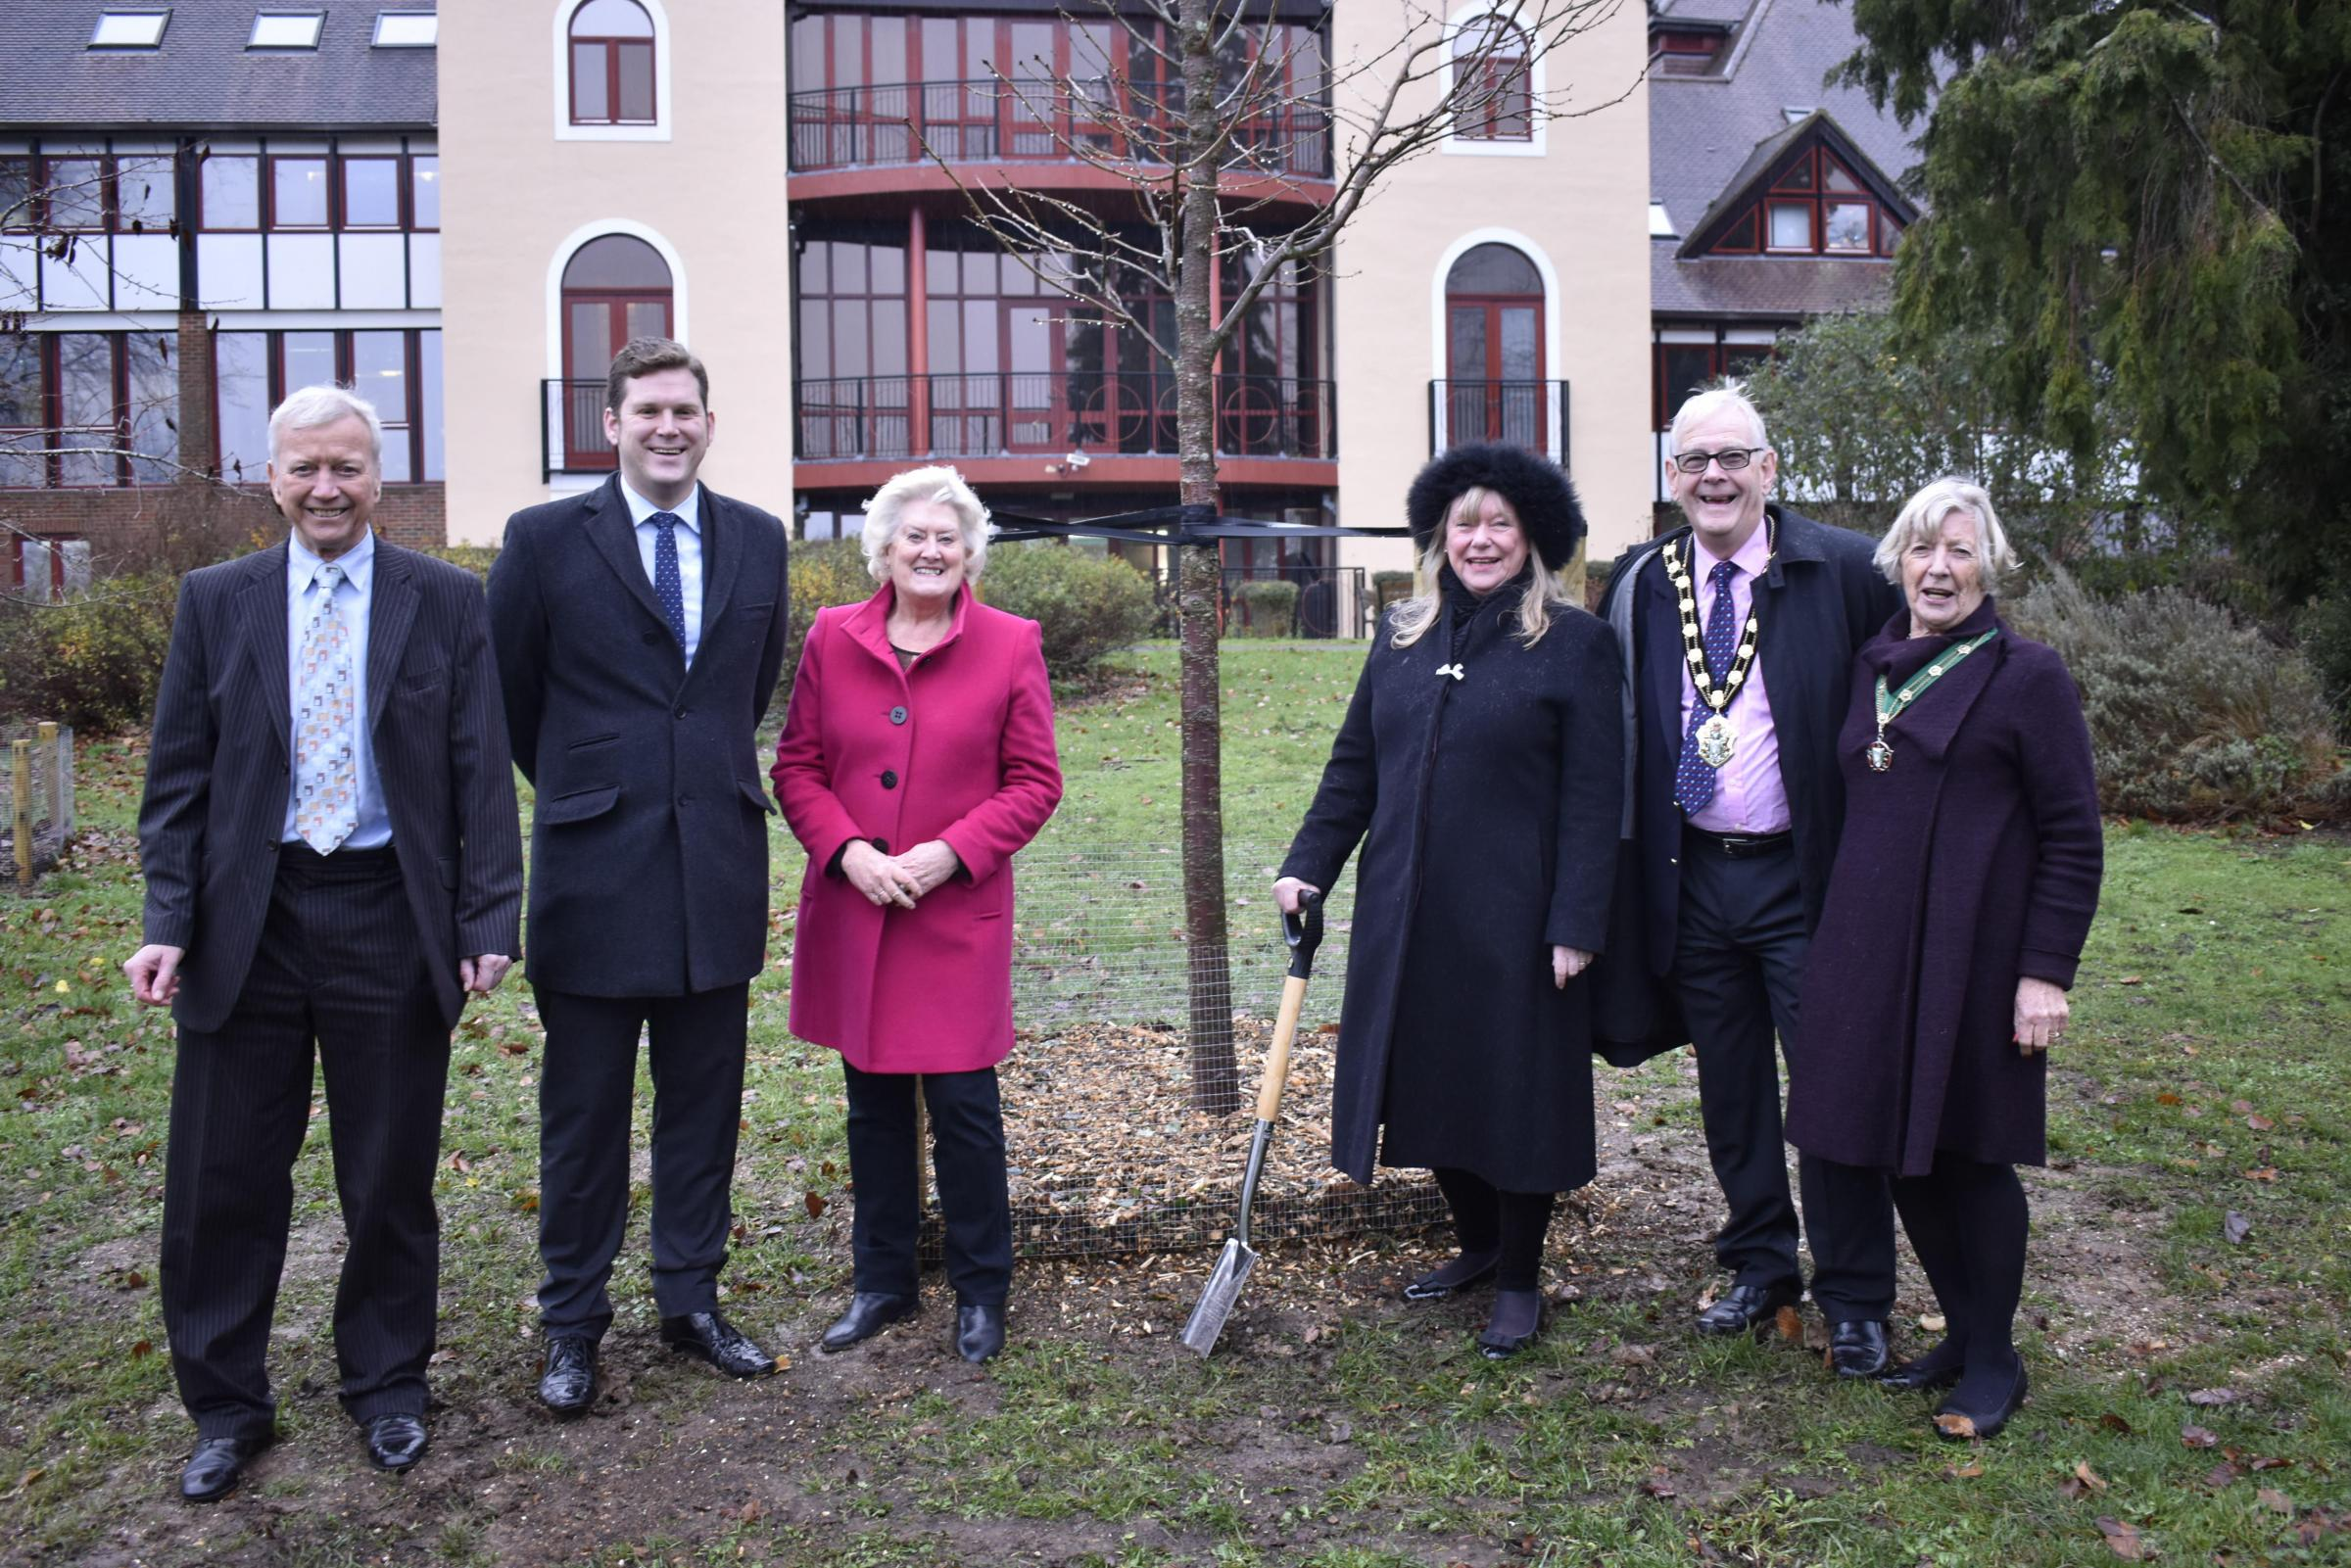 From left: Cllr Alan Dowden, leader Phil North, councillors Celia Dowden, Jan Lovell, Mayor of Test Valley, councillor Ian Carr and Mayoress.